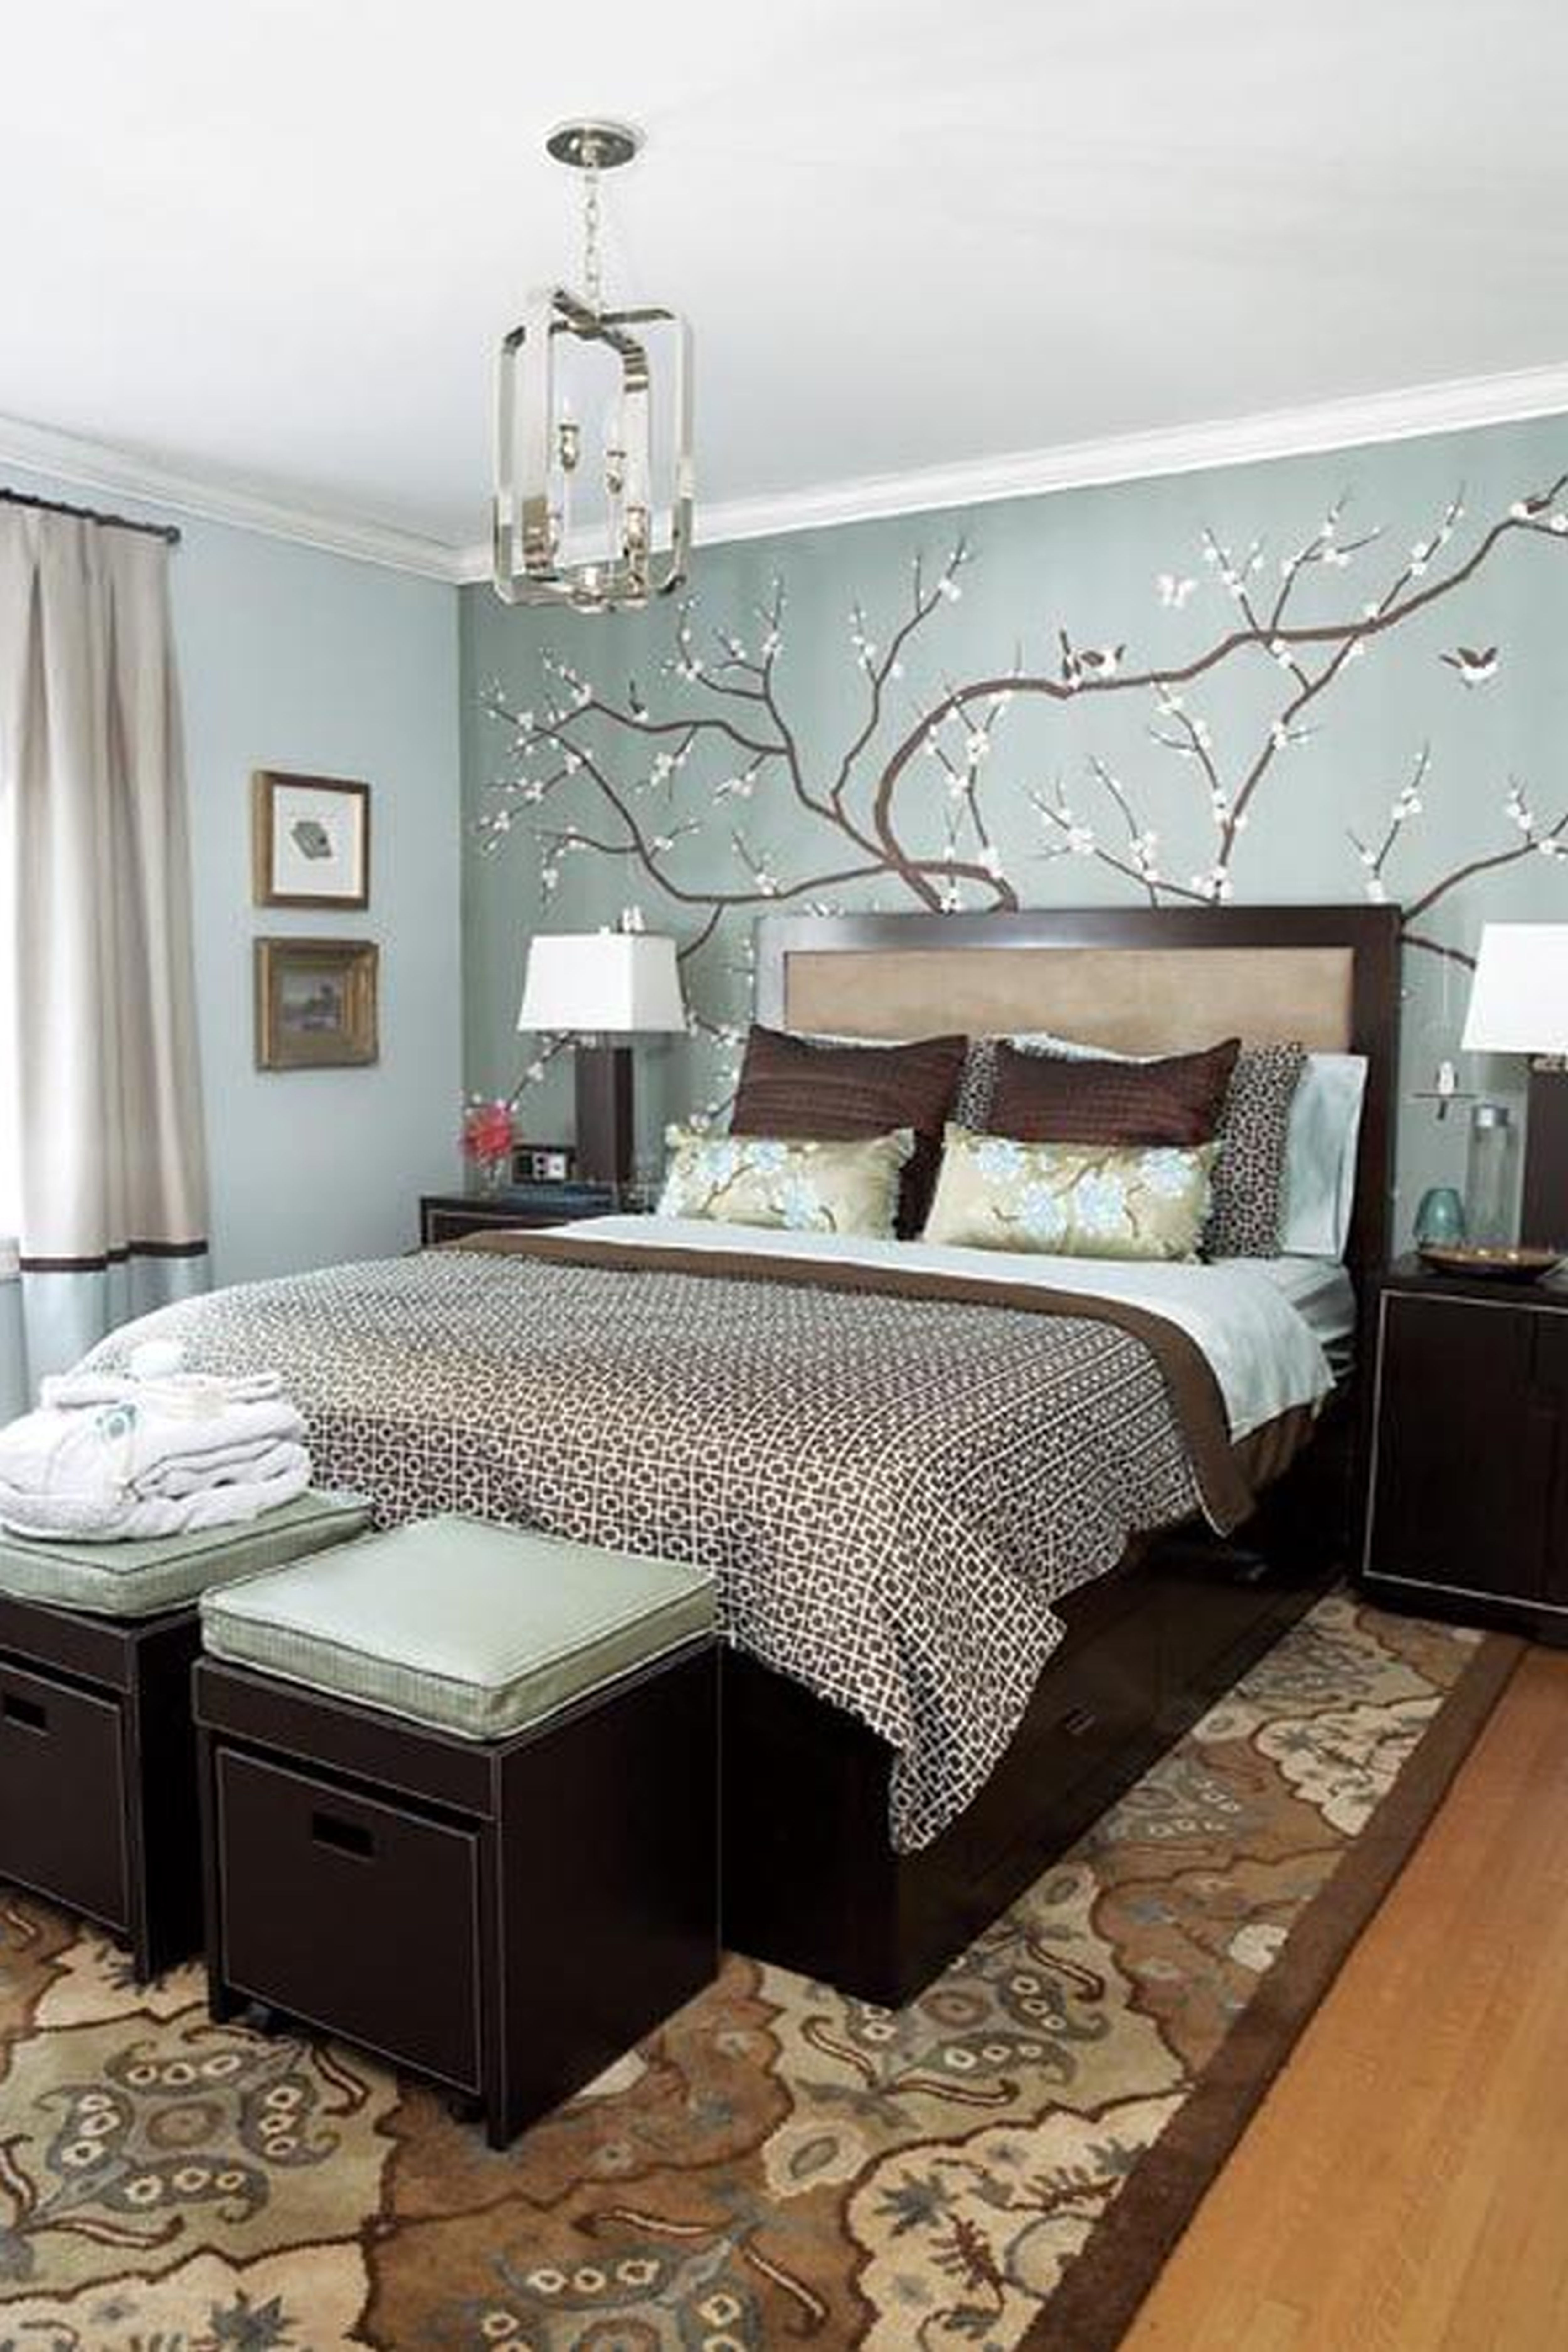 Brown and dark blue bedroom - Bedroom Decorating Ideas With Grey Walls